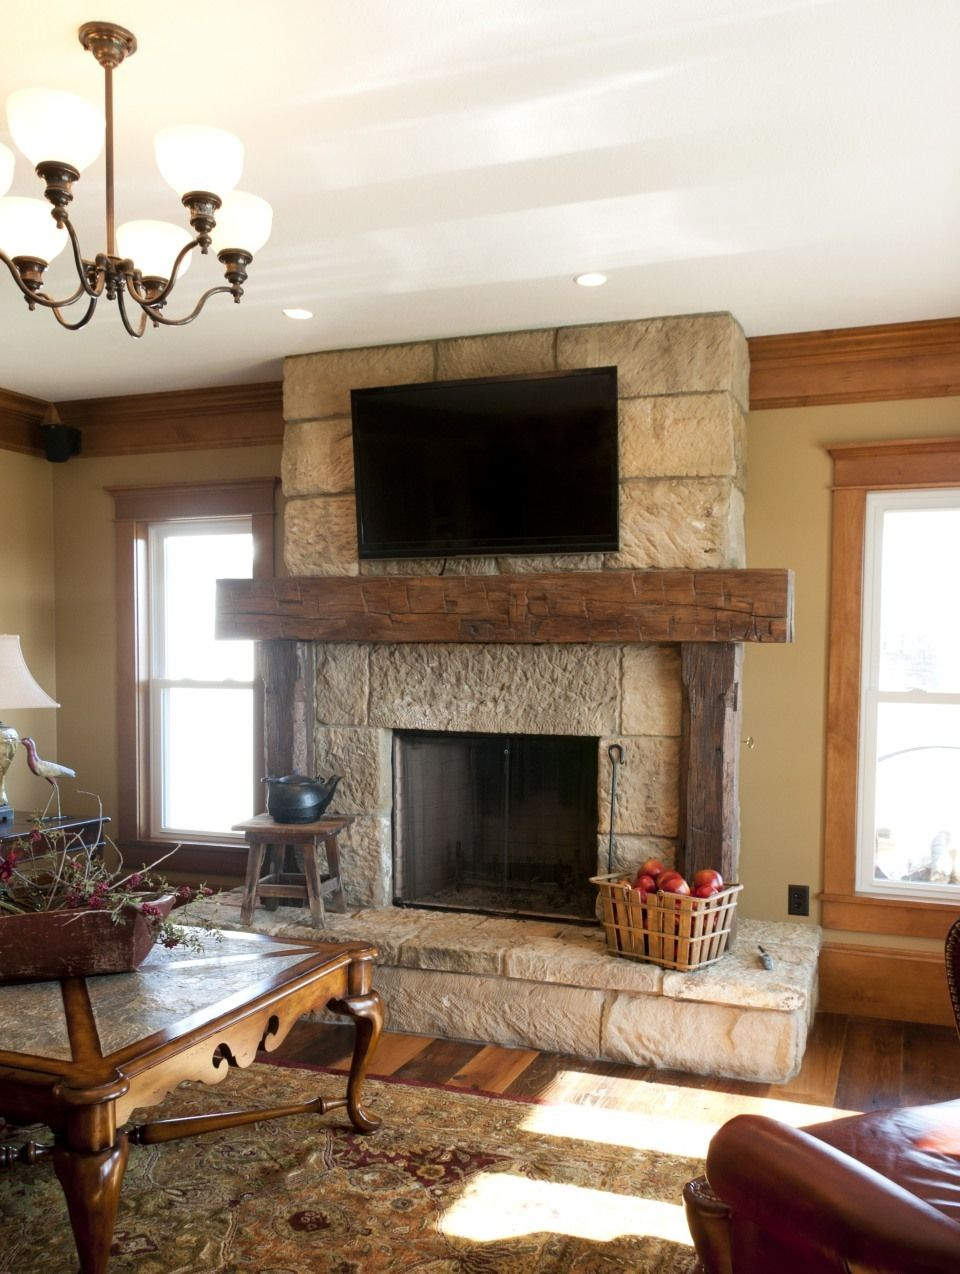 Fireplace mantels   Flooring Hand Hewn Timbers Antique Barn Siding Fireplace  Mantels  fireplace mantels   Flooring Hand Hewn Timbers Antique Barn Siding  . Old Wood Fireplace Mantels. Home Design Ideas